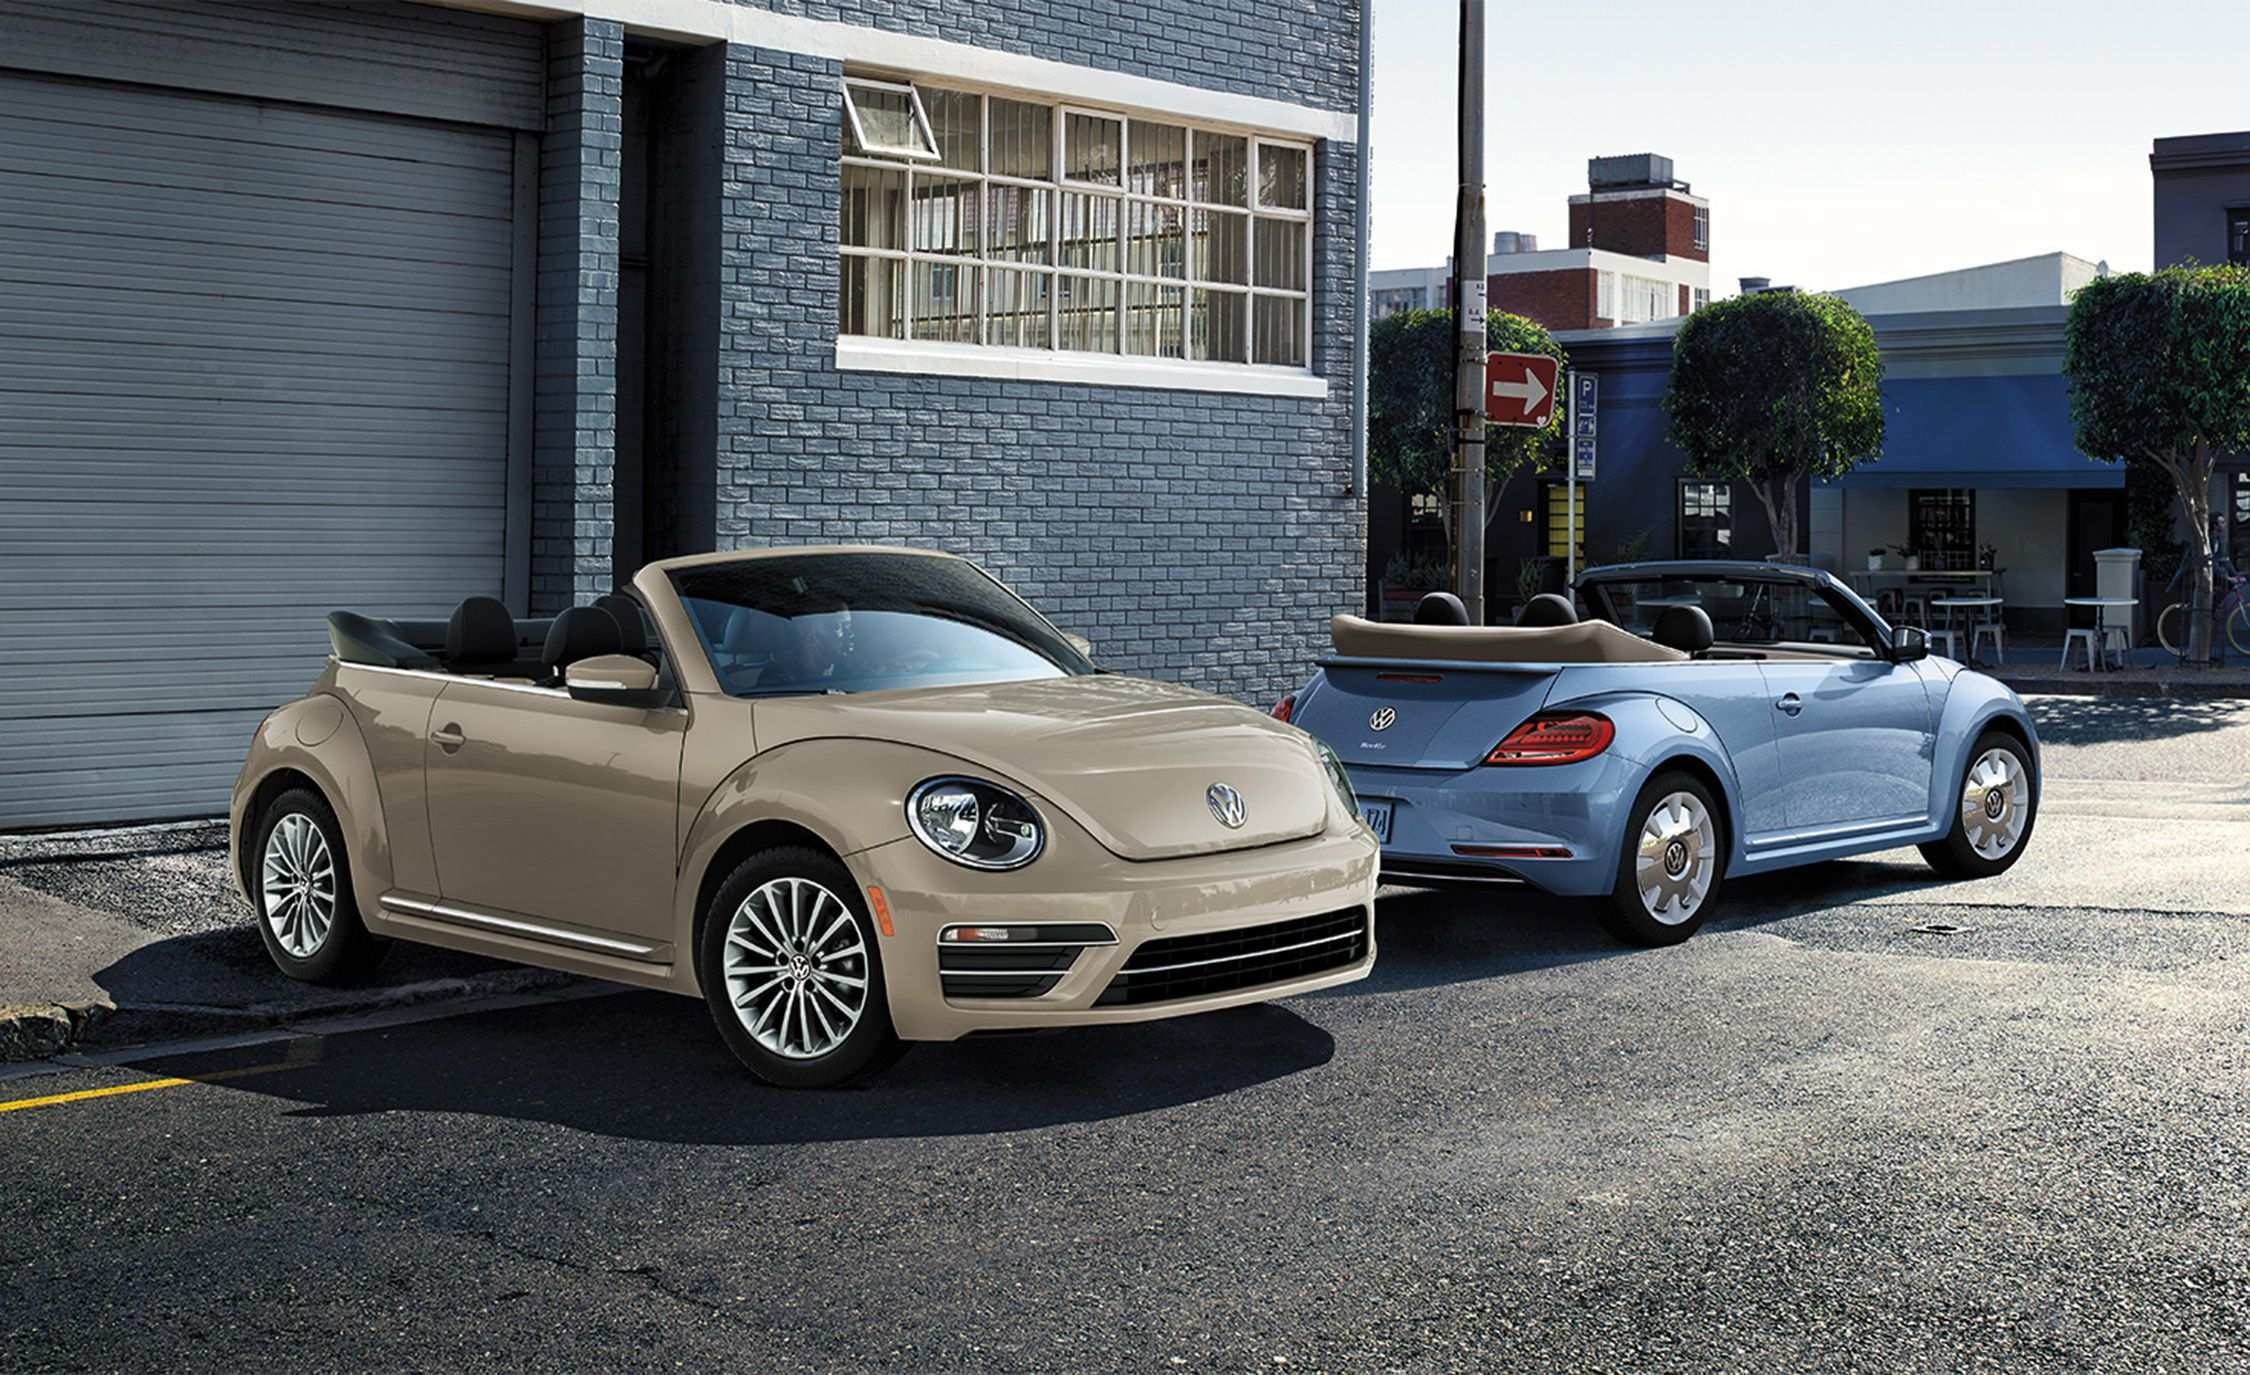 99 Gallery of Volkswagen New Beetle 2020 Reviews by Volkswagen New Beetle 2020